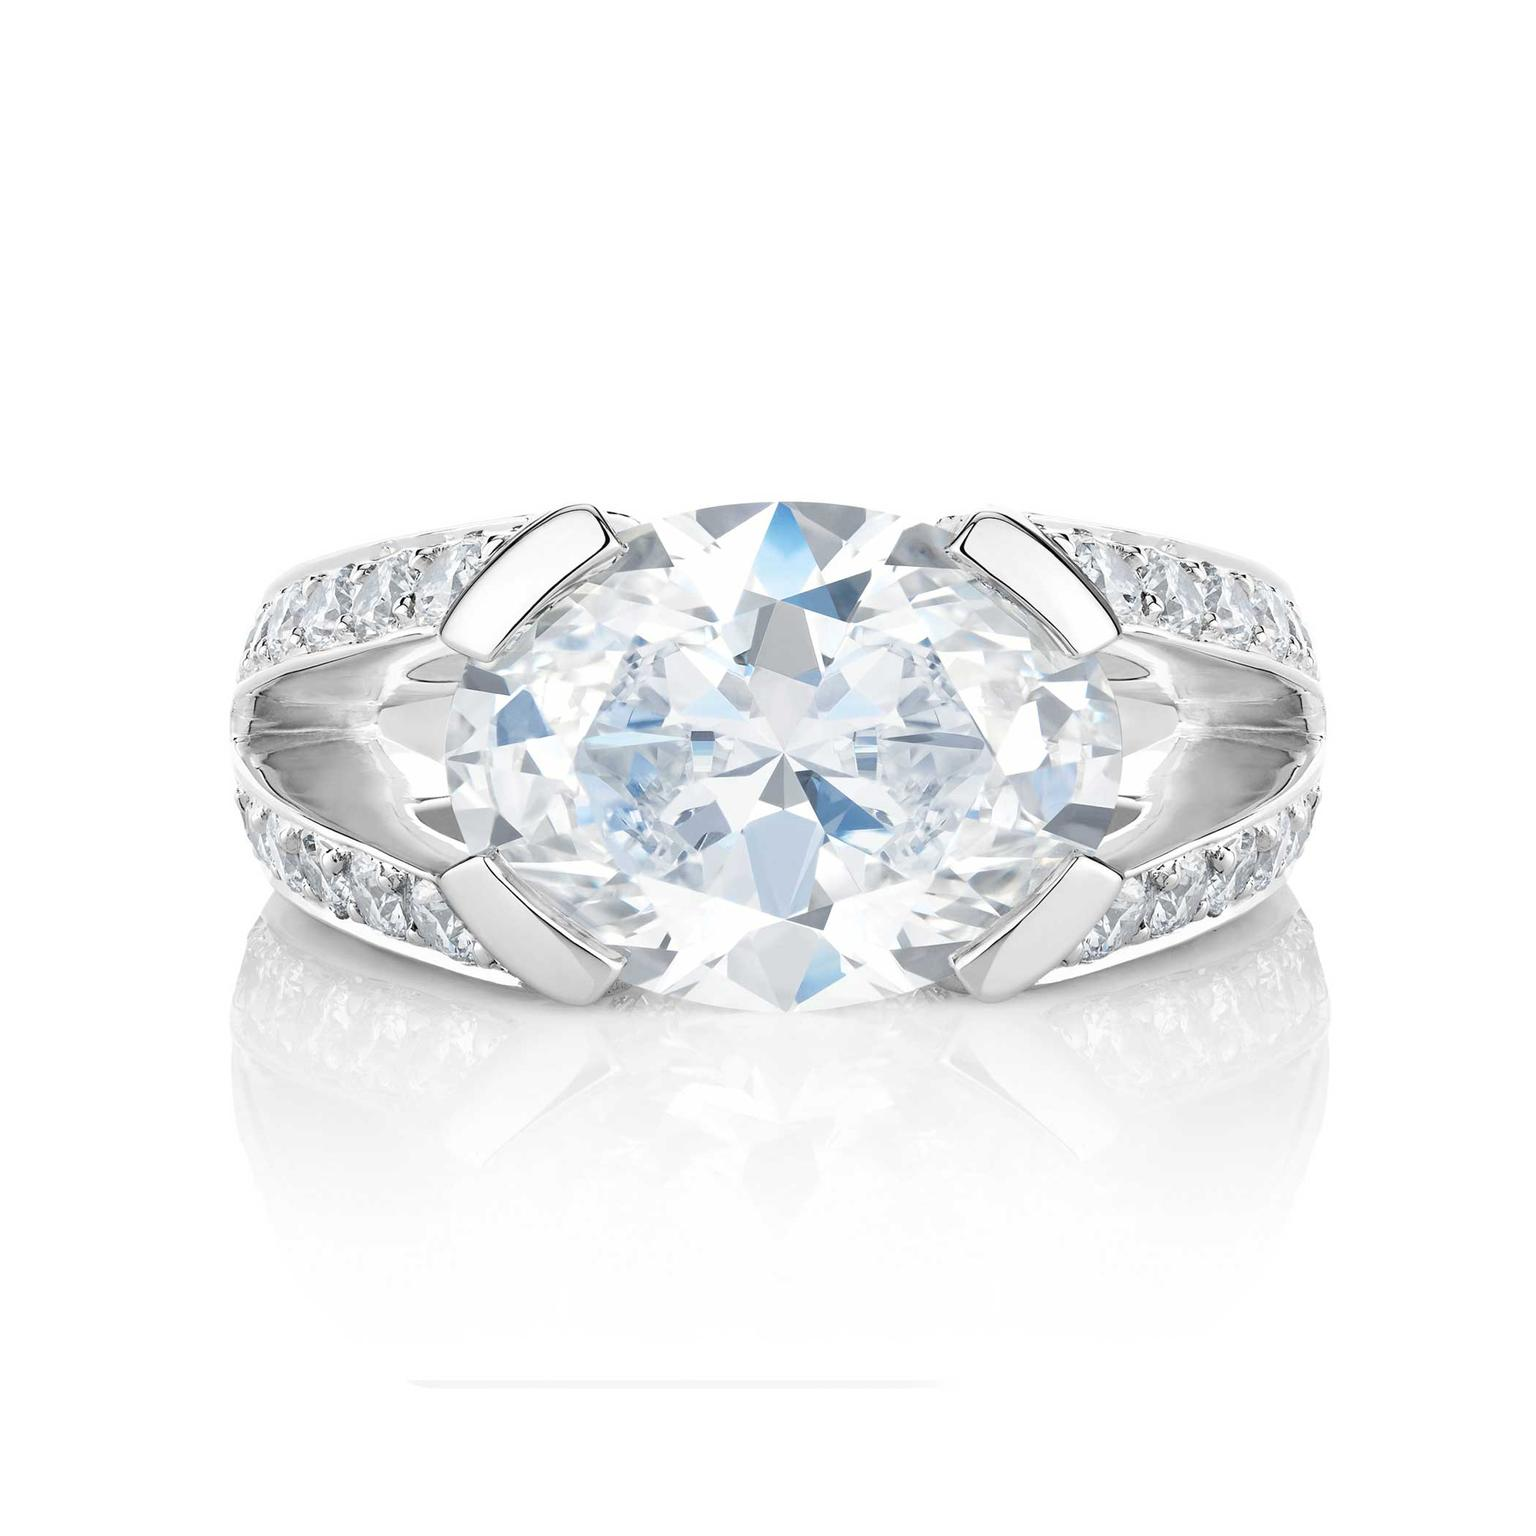 De Beers Master Diamonds Annabel oval ring